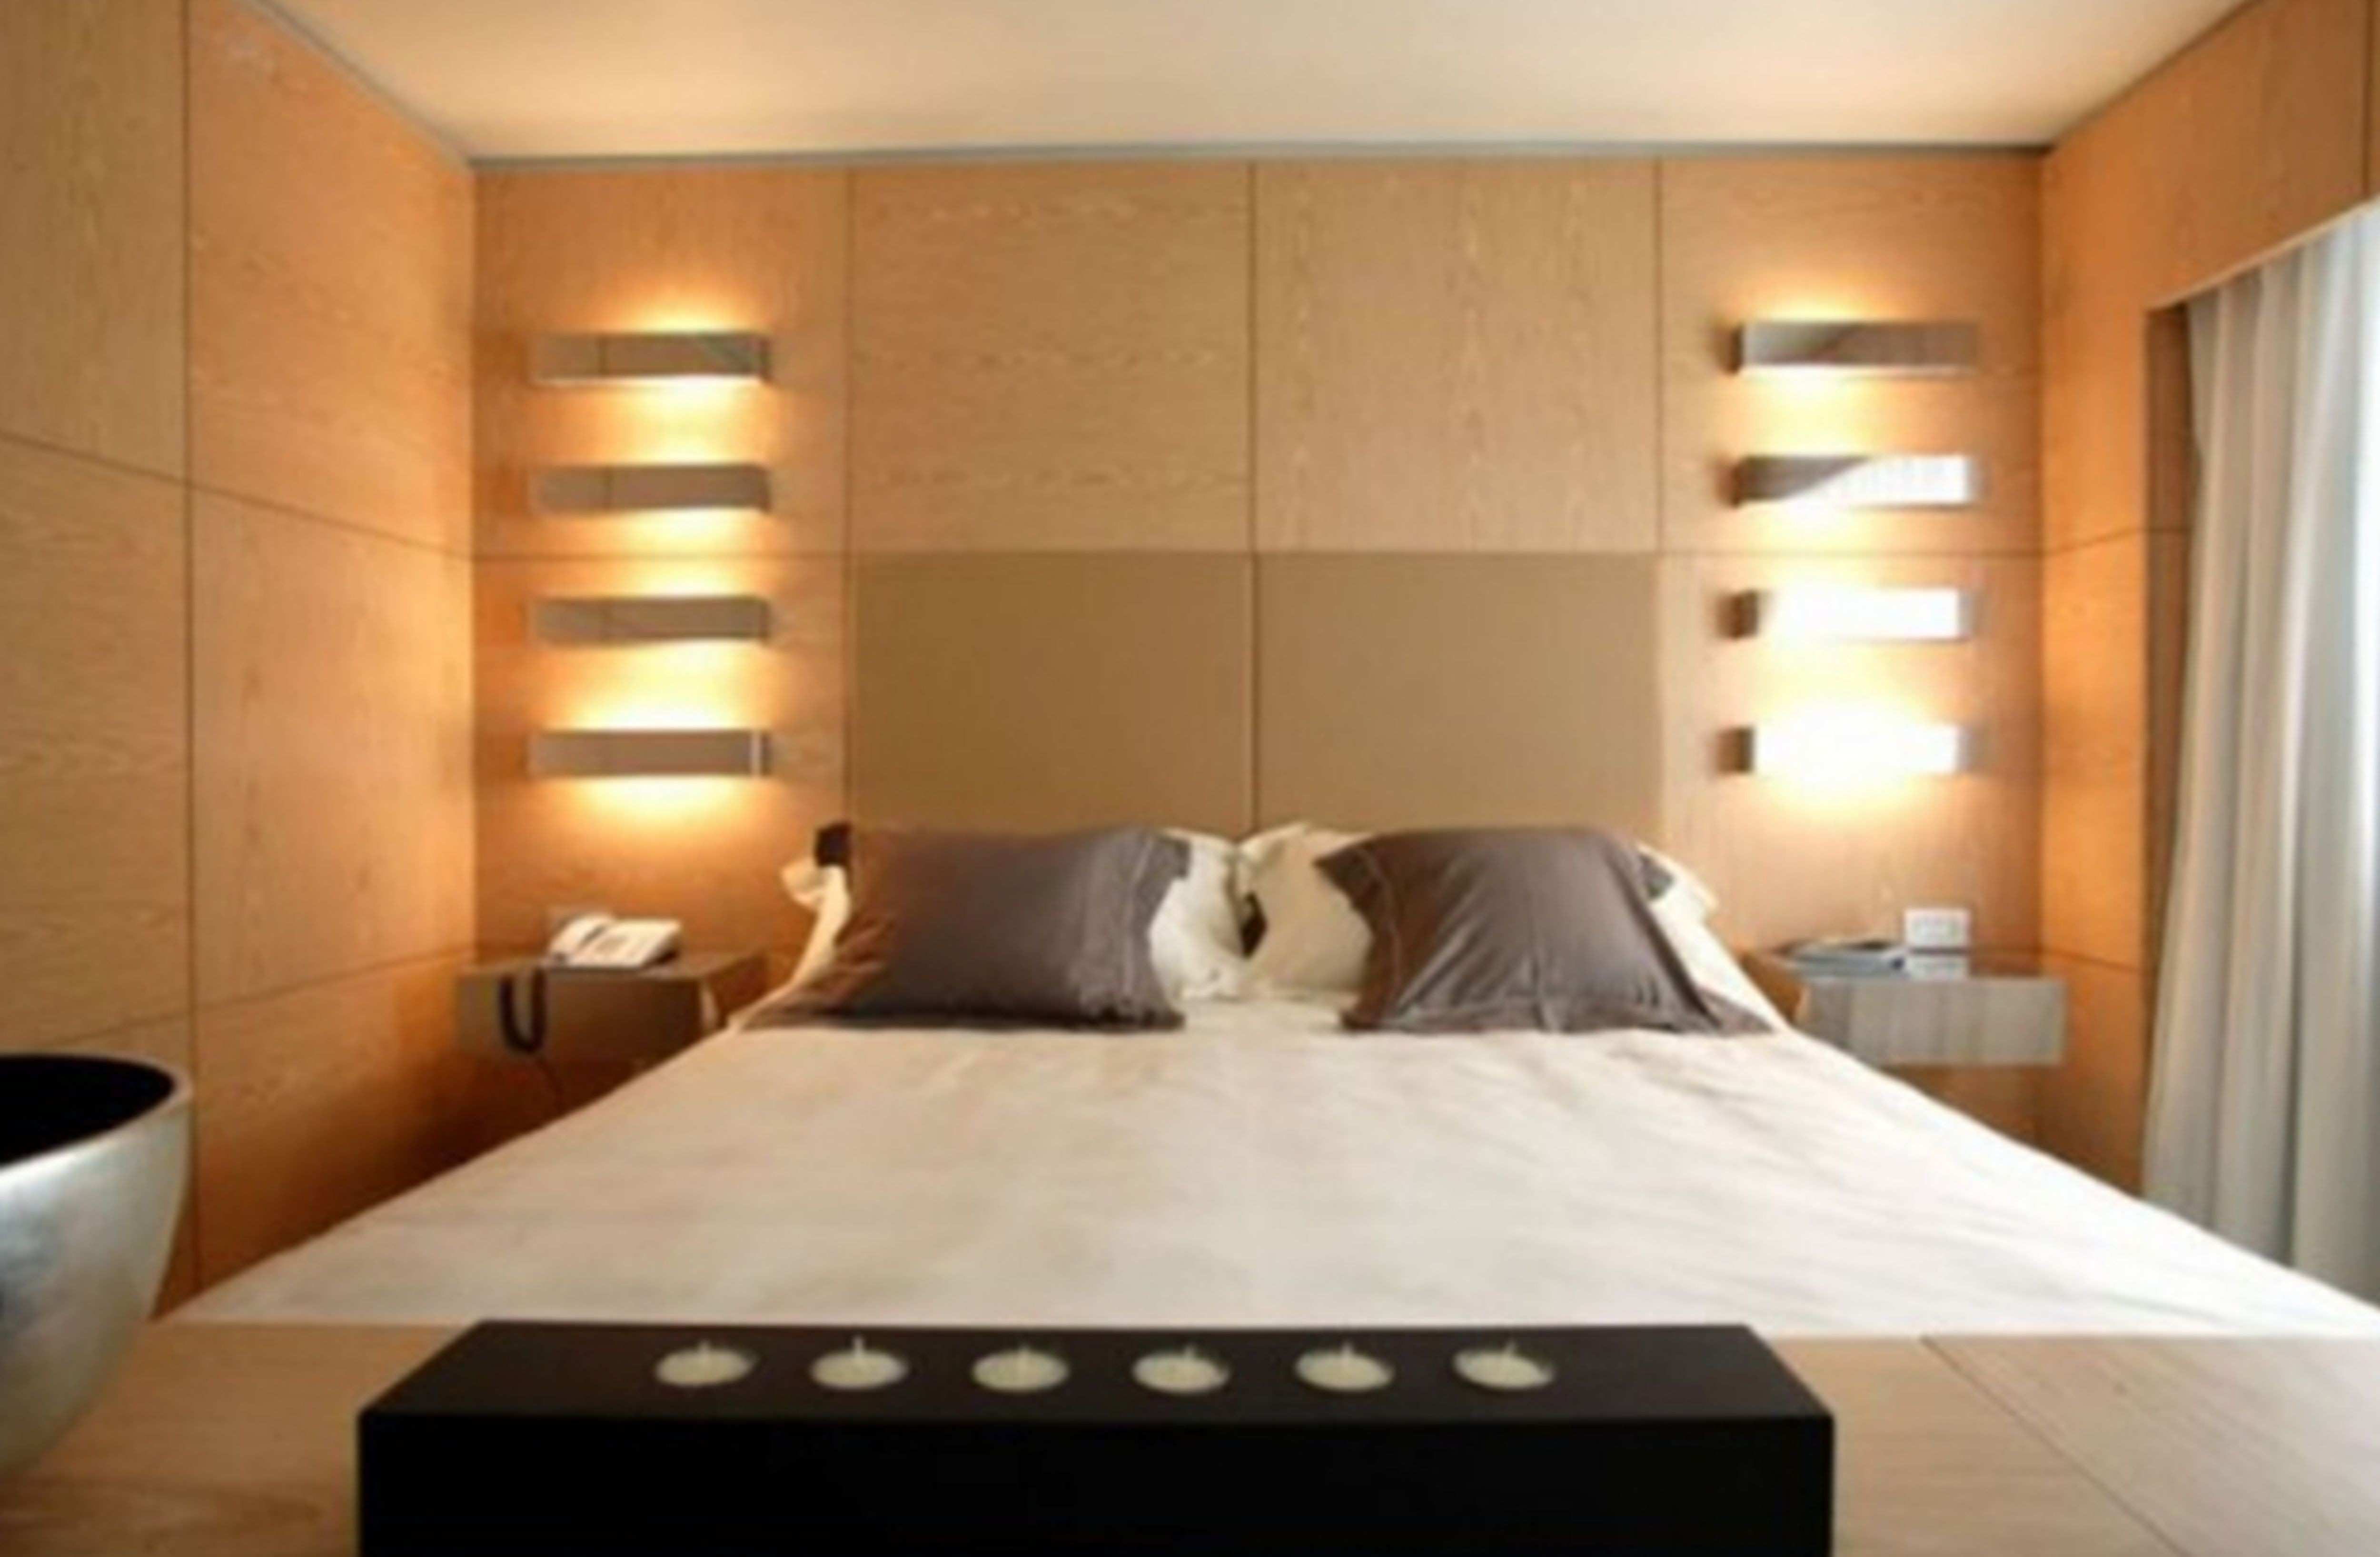 Wall Mounted Lights For Bedroom • Bedroom Ideas